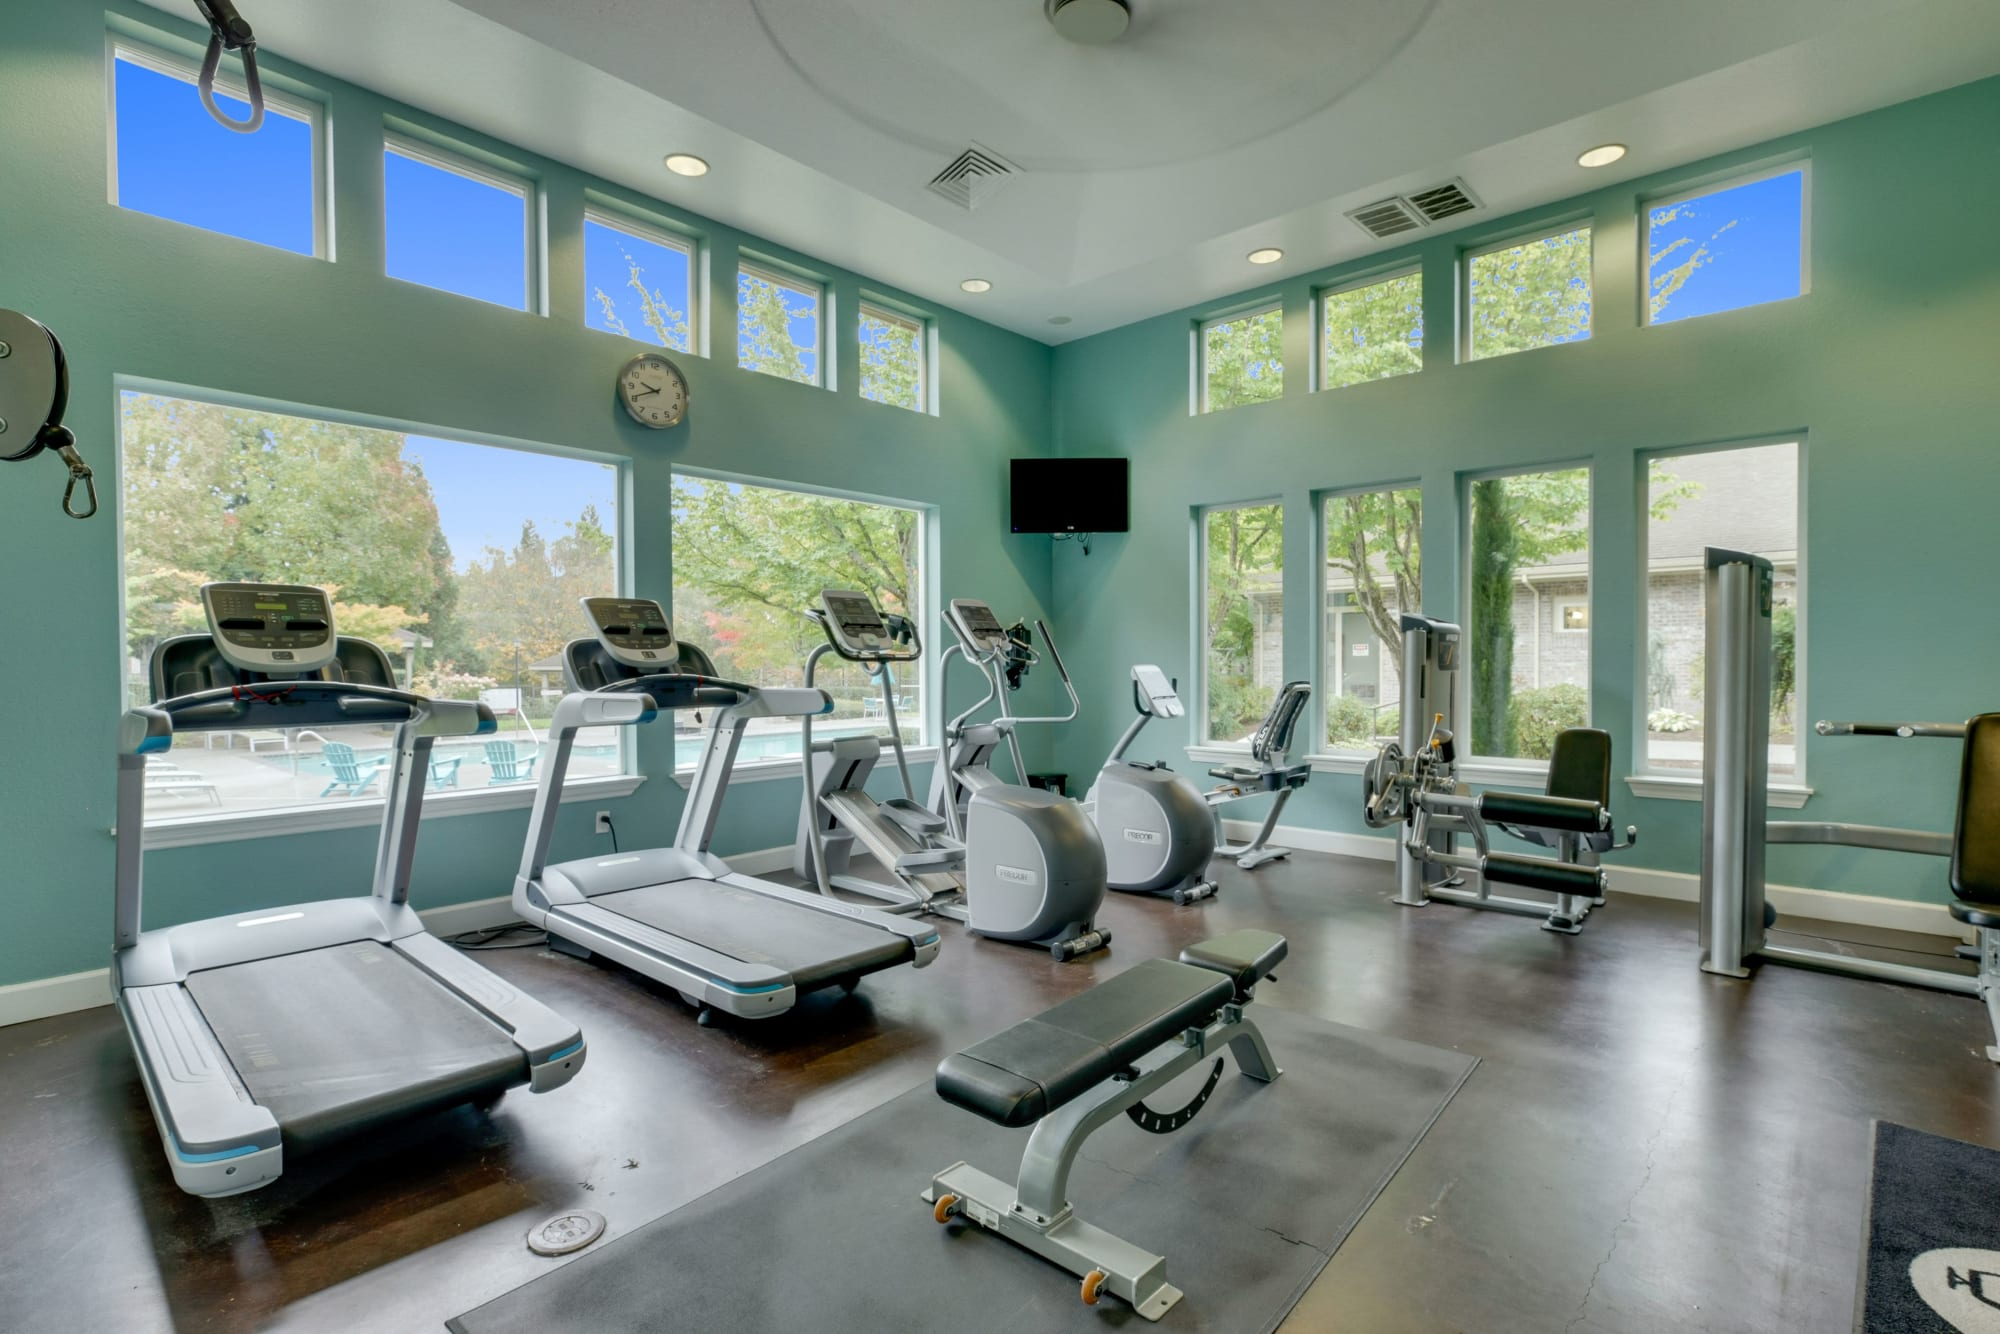 A fitness center with treadmills at The Grove at Orenco Station in Hillsboro, Oregon